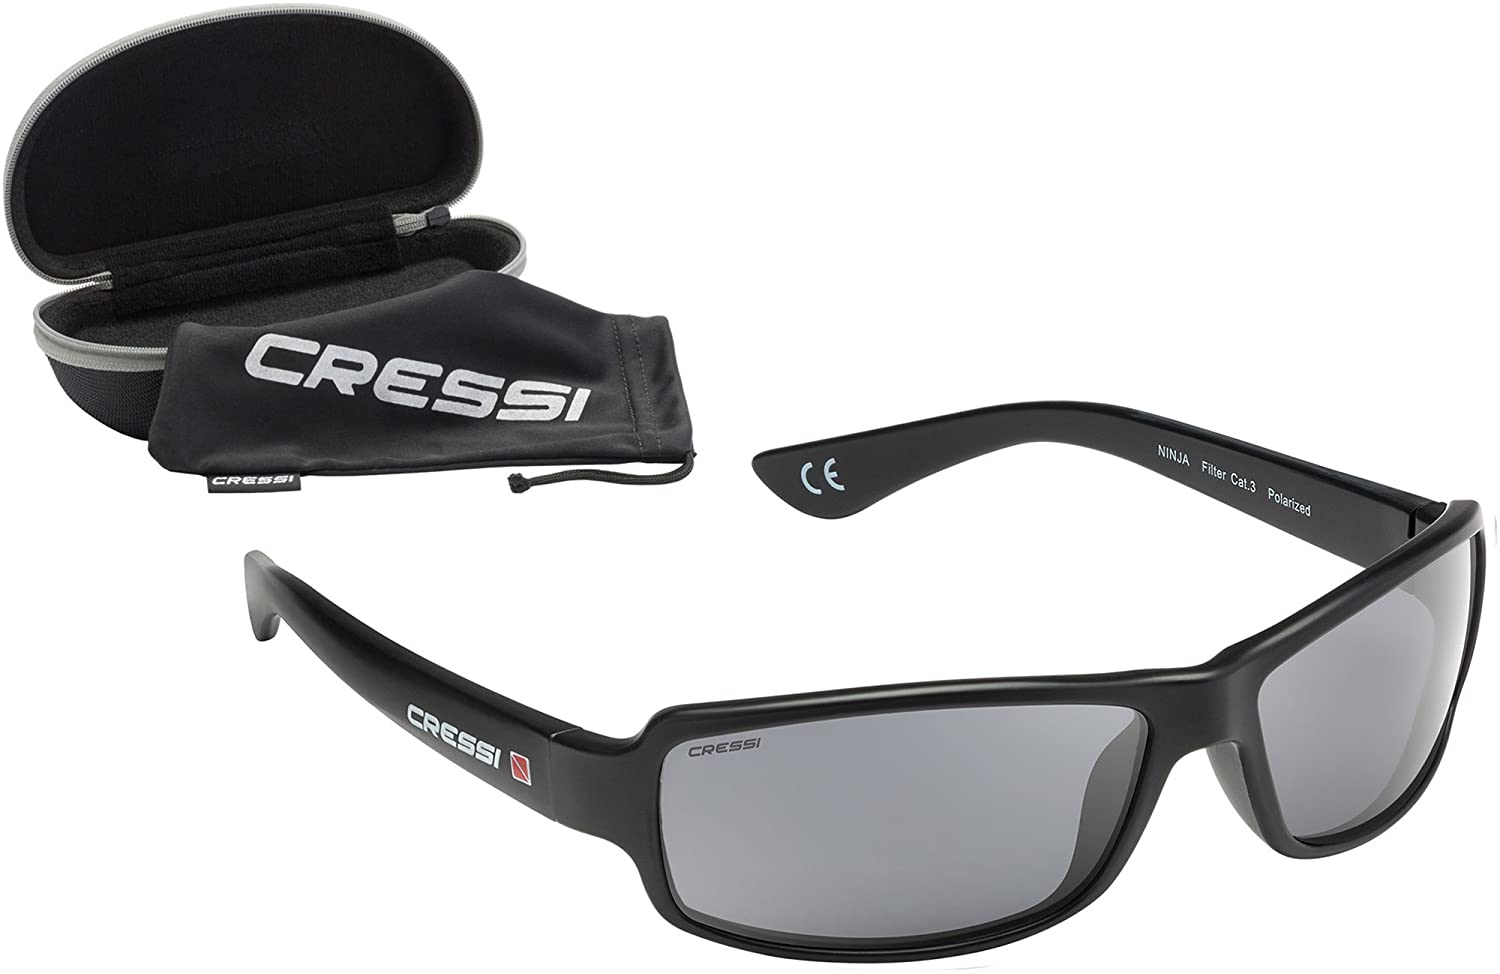 cressi ninja sonnenbrille sport herren polarisiert mit. Black Bedroom Furniture Sets. Home Design Ideas